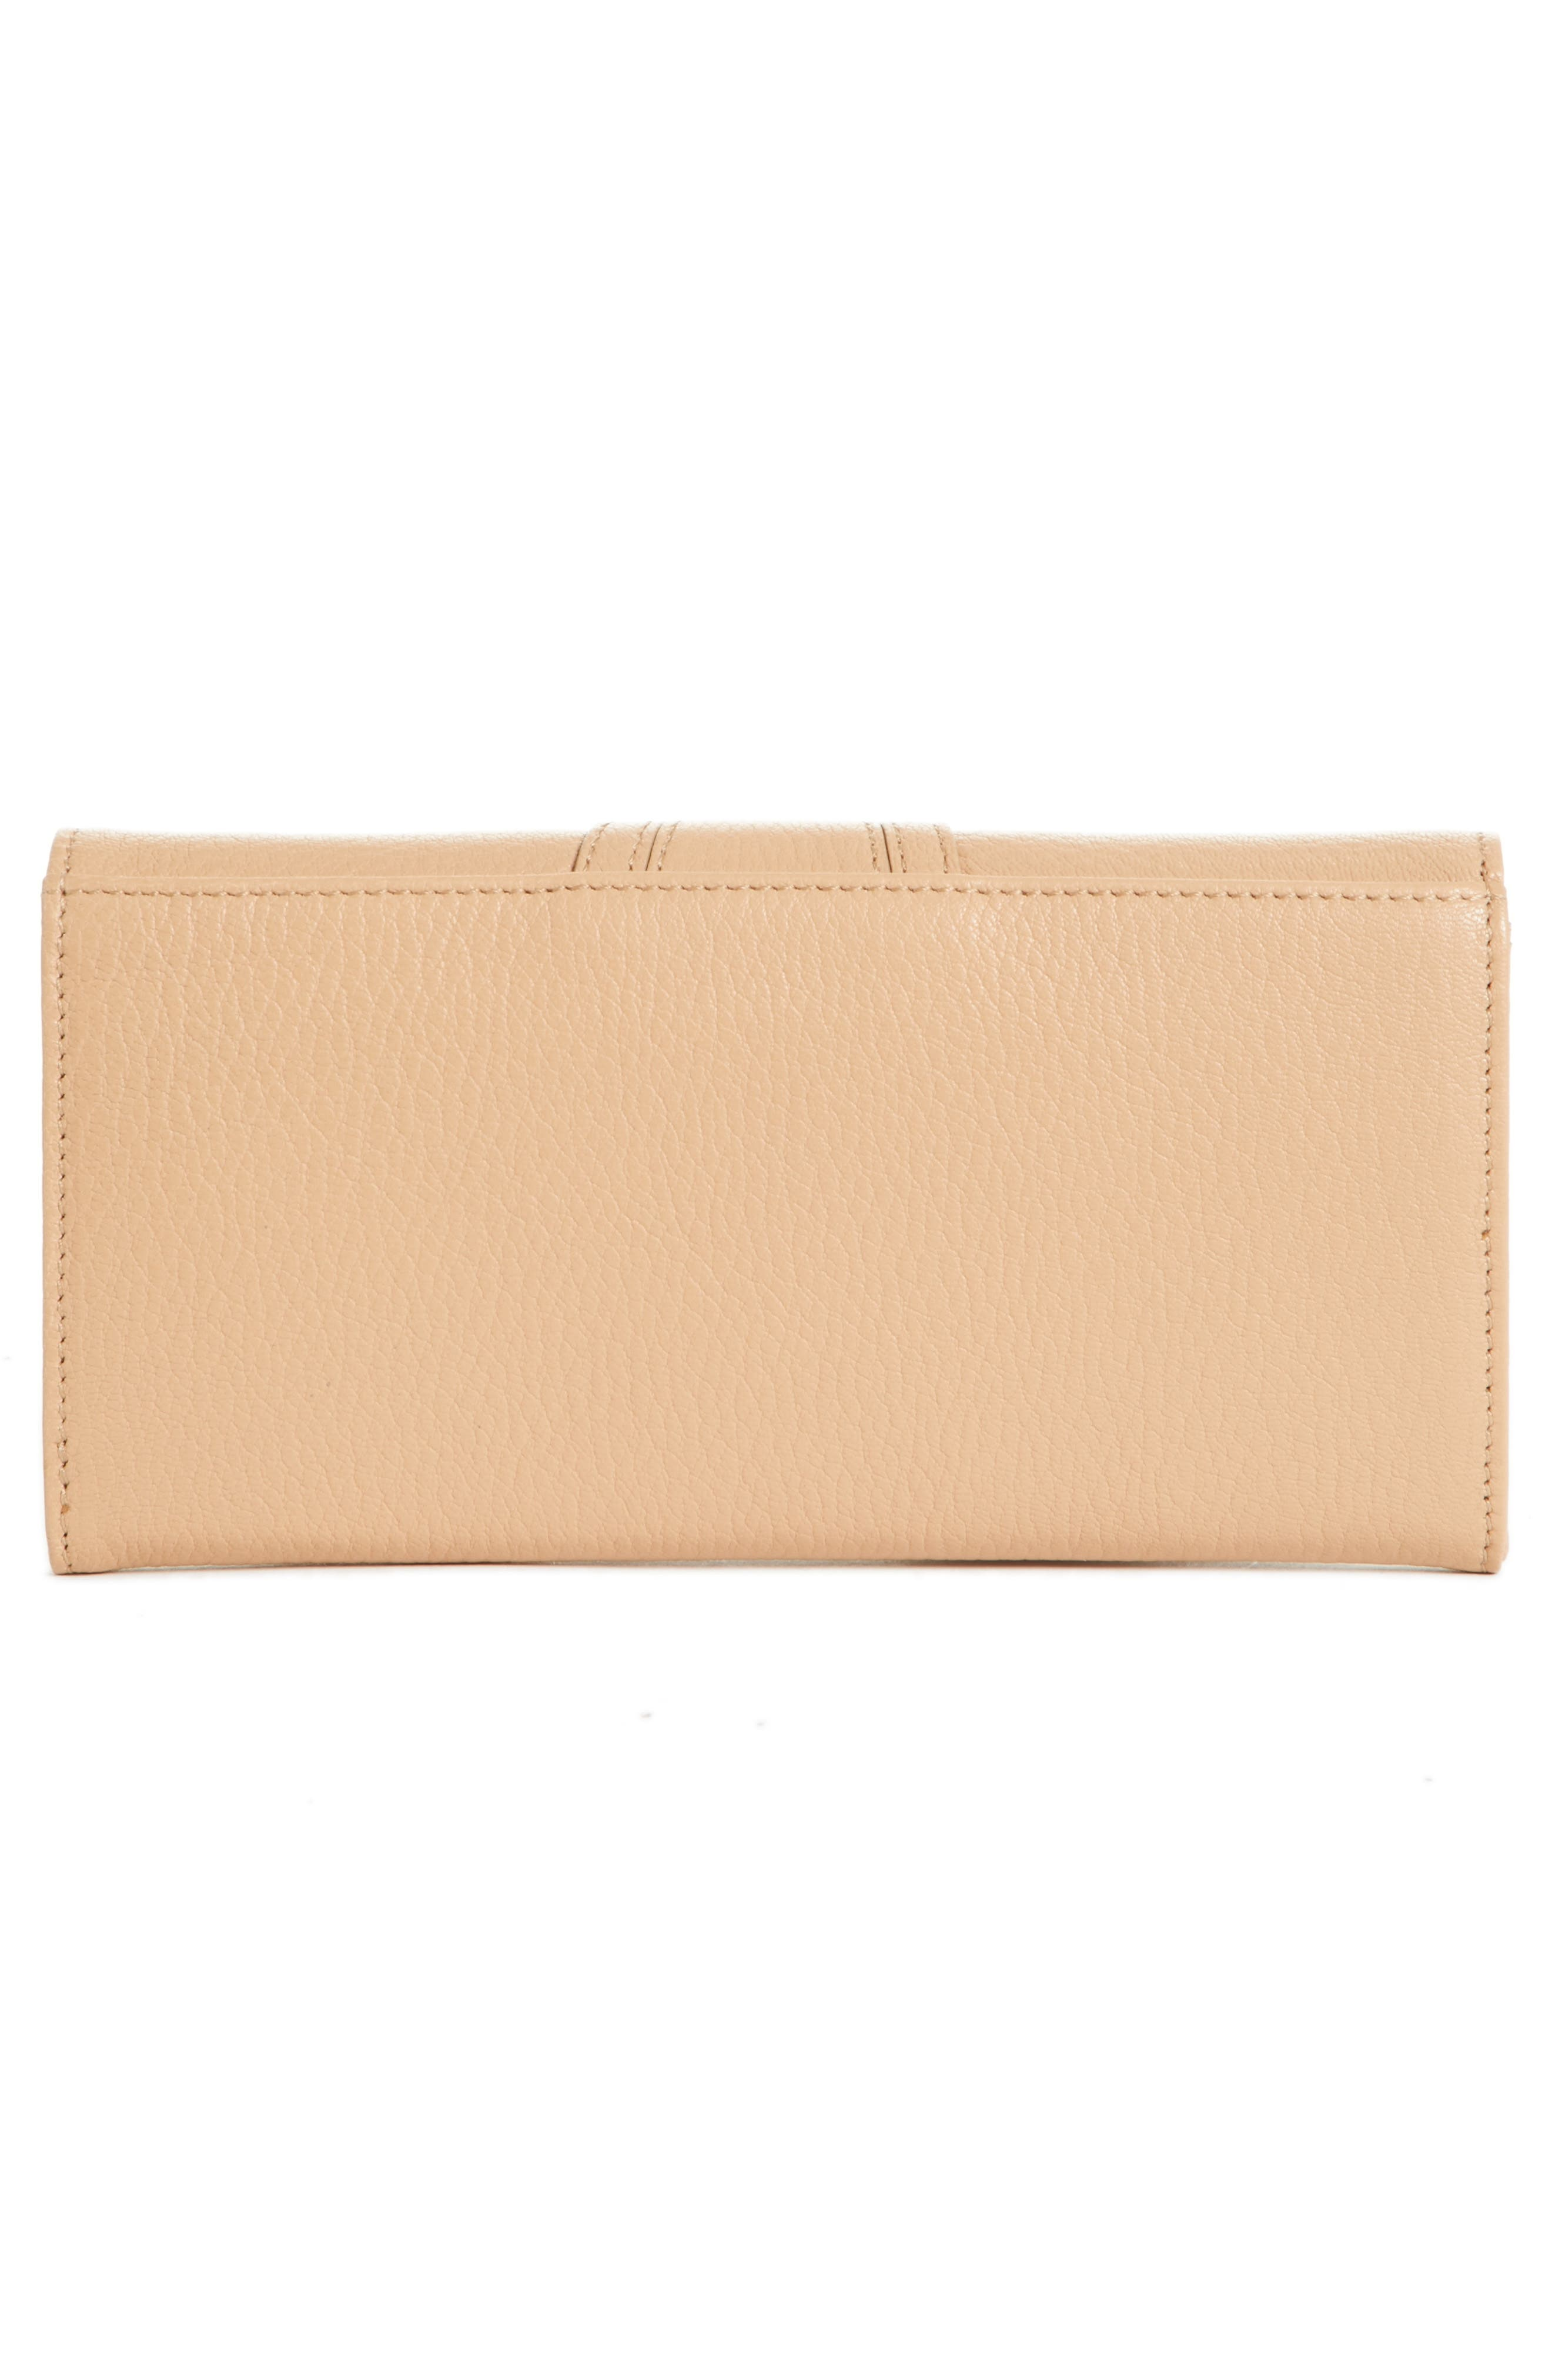 Hana Large Leather Wallet,                             Alternate thumbnail 4, color,                             Blush Nude